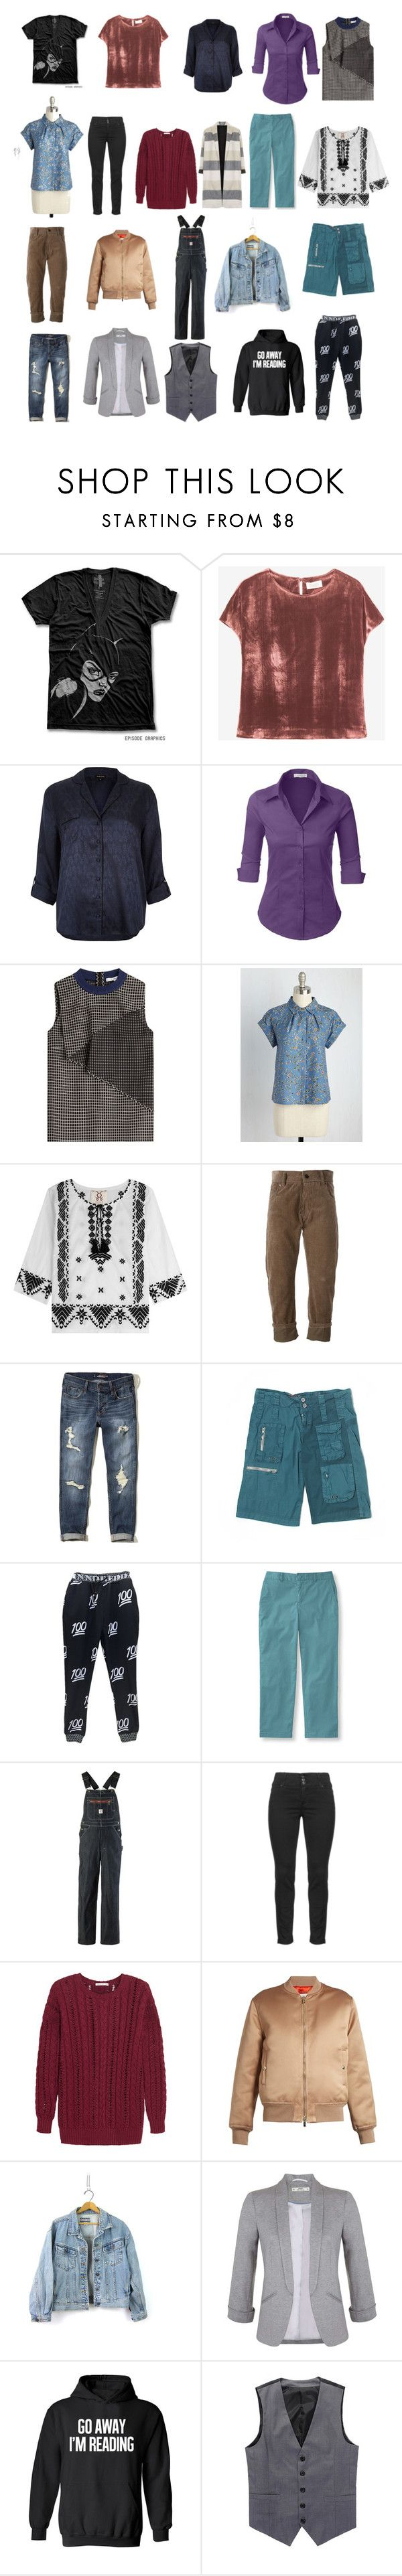 """""""FemBoi 7 Capsule Pt. 1"""" by veganchefmarie on Polyvore featuring Toast, River Island, LE3NO, Carven, Figue, Haider Ackermann, Hollister Co., Pete & Greta, L.L.Bean and Pointer Brand"""